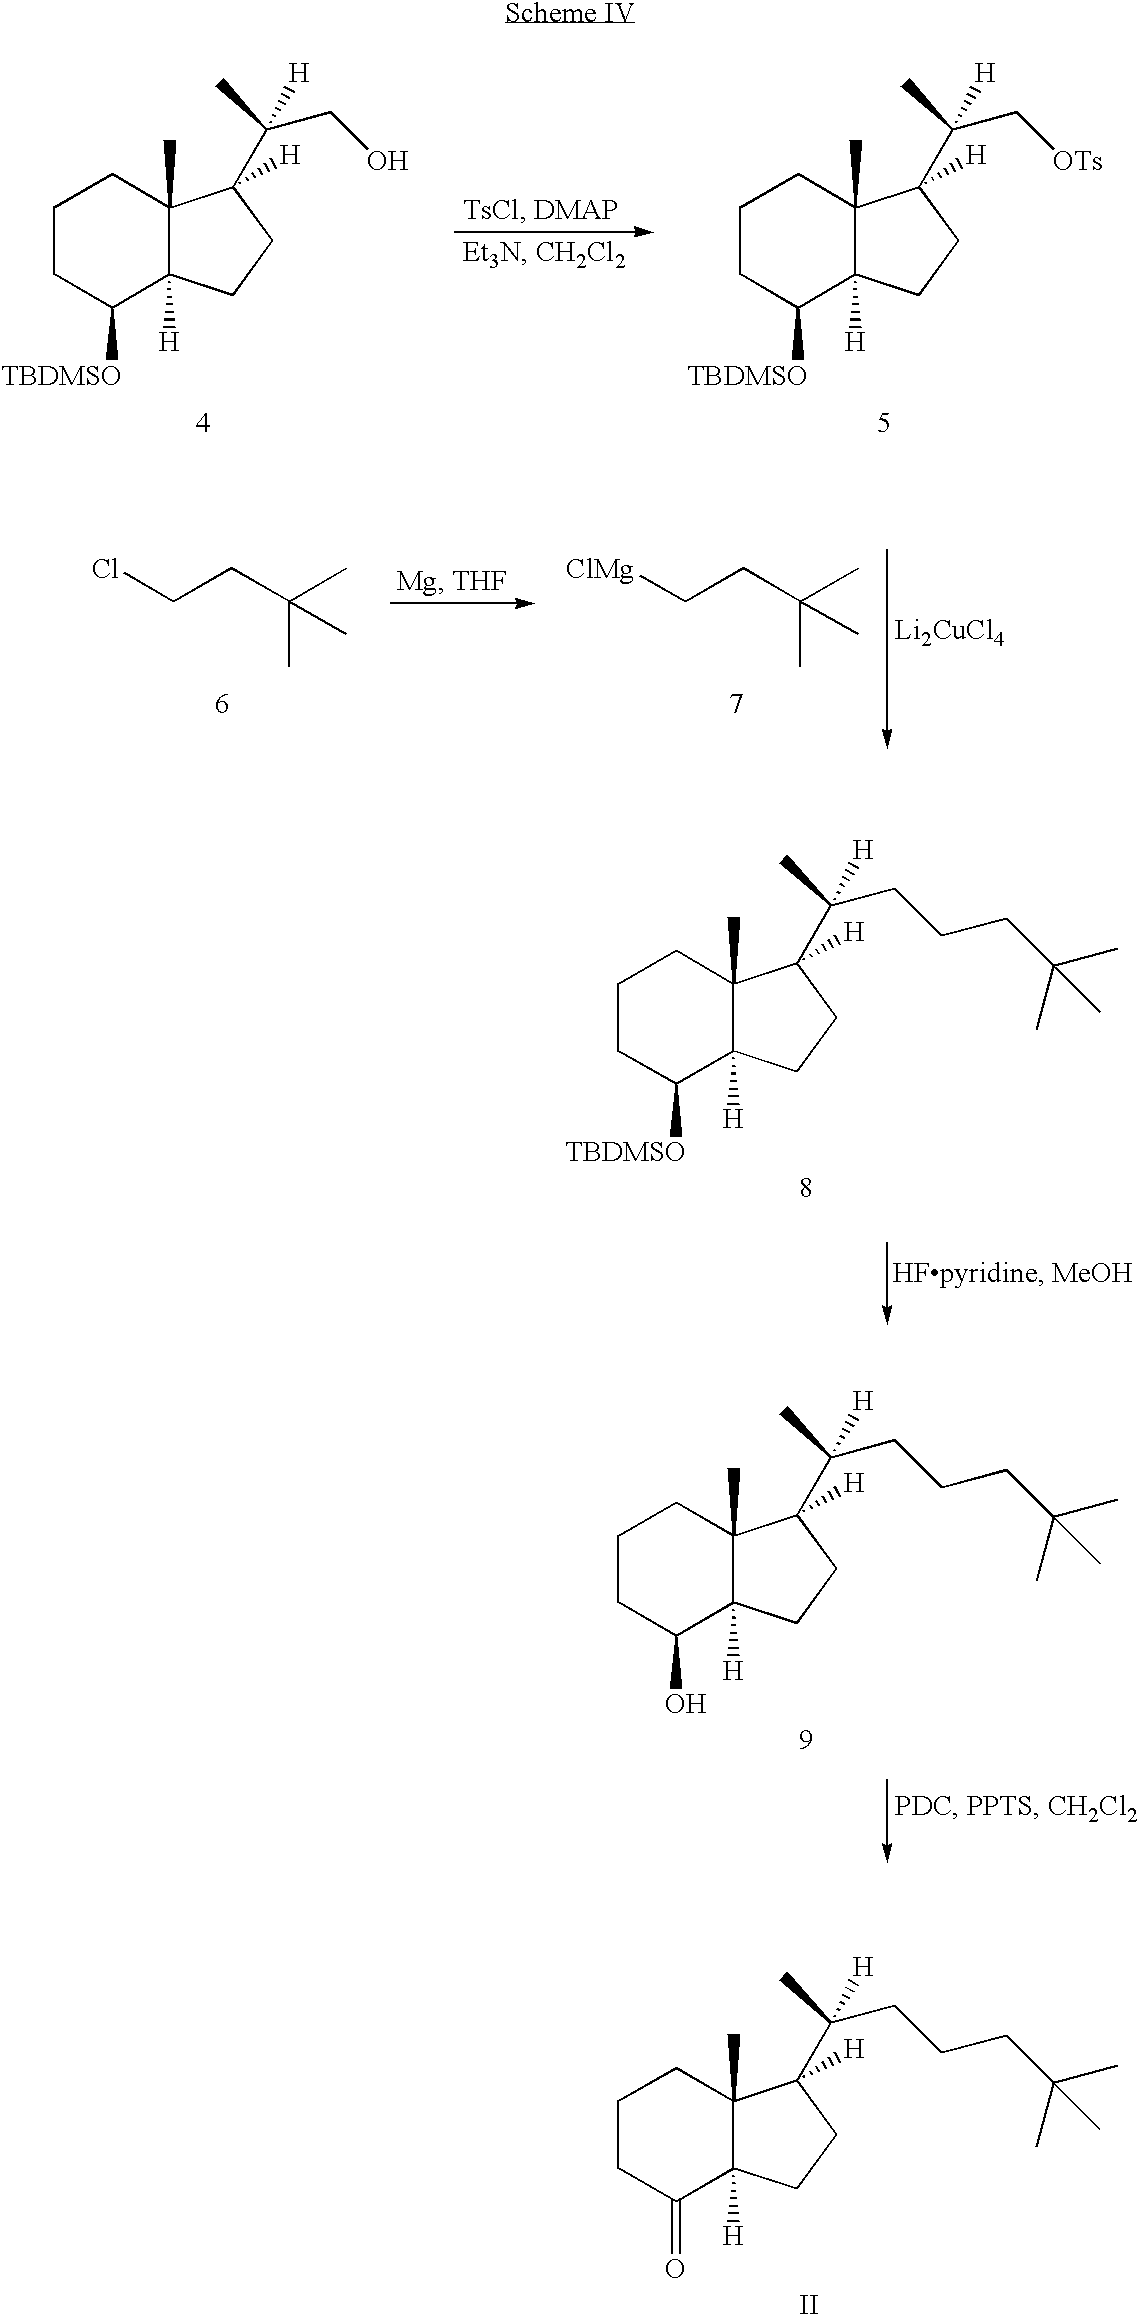 US20050119242A1 - Vitamin D analogs for obesity prevention